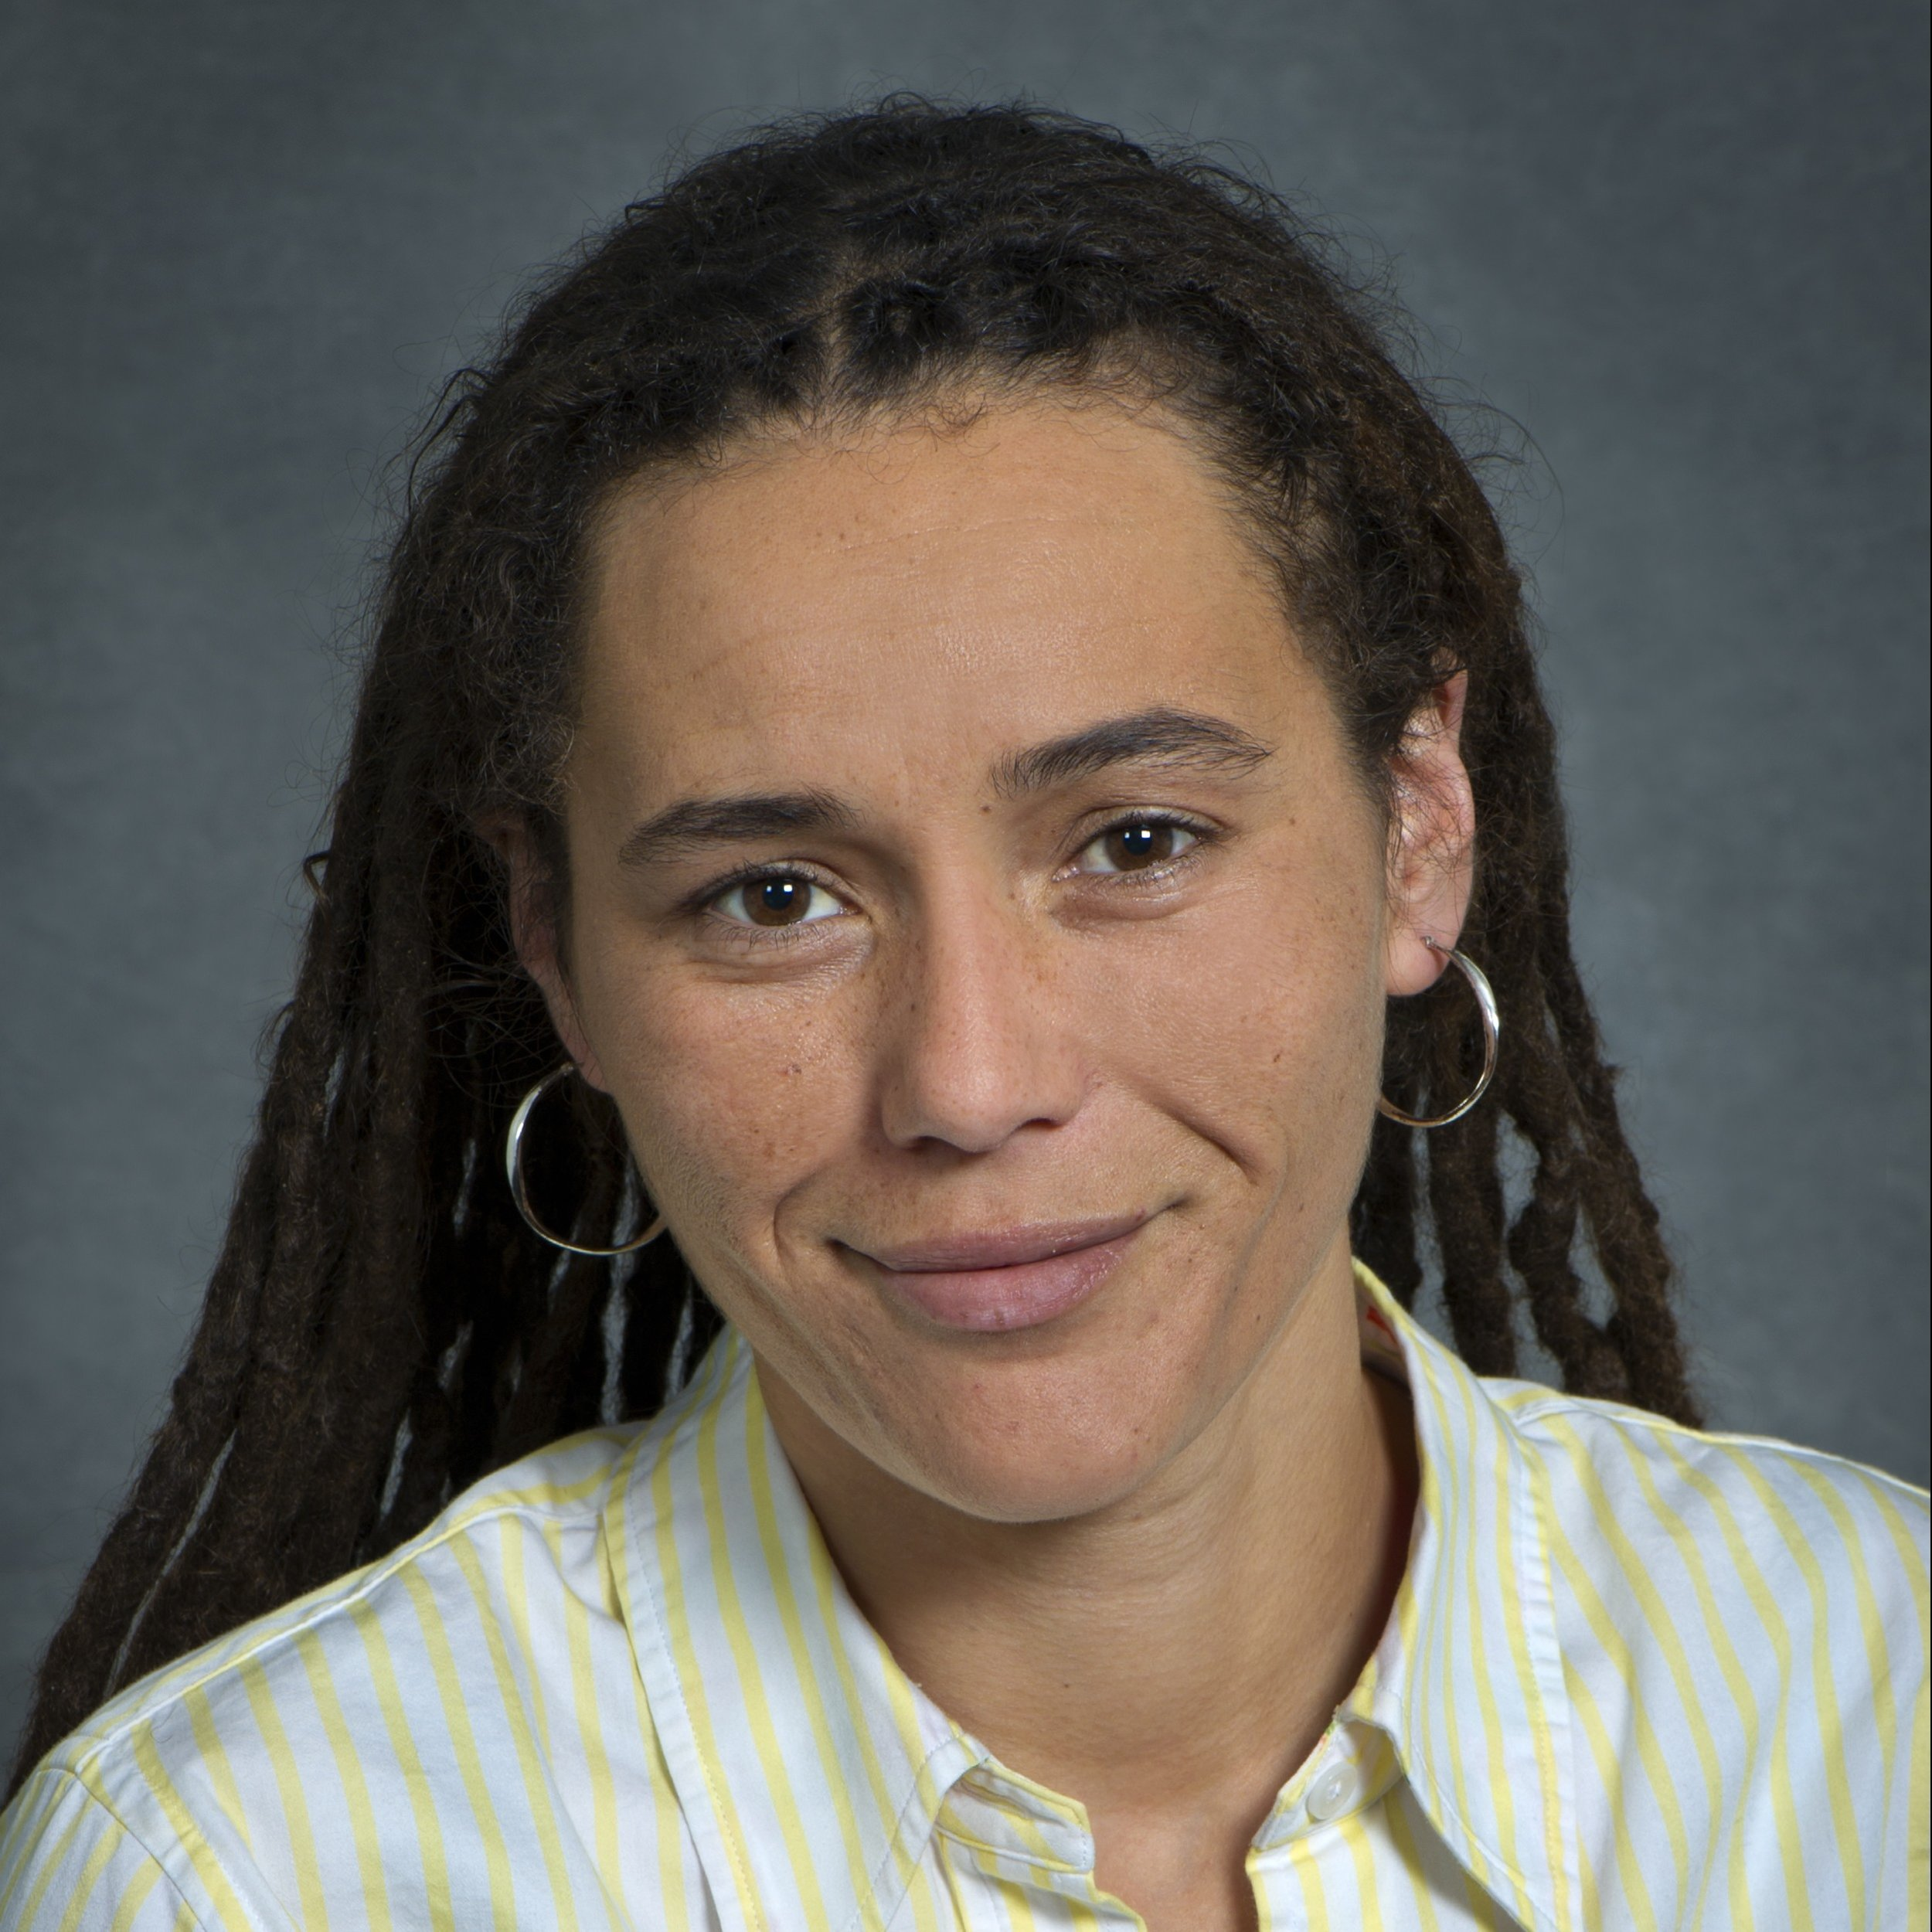 Jessica Granderson - Staff Scientist and Deputy of Research Programs, Building Technology and Urban Systems Division, Lawrence Berkeley National Laboratory